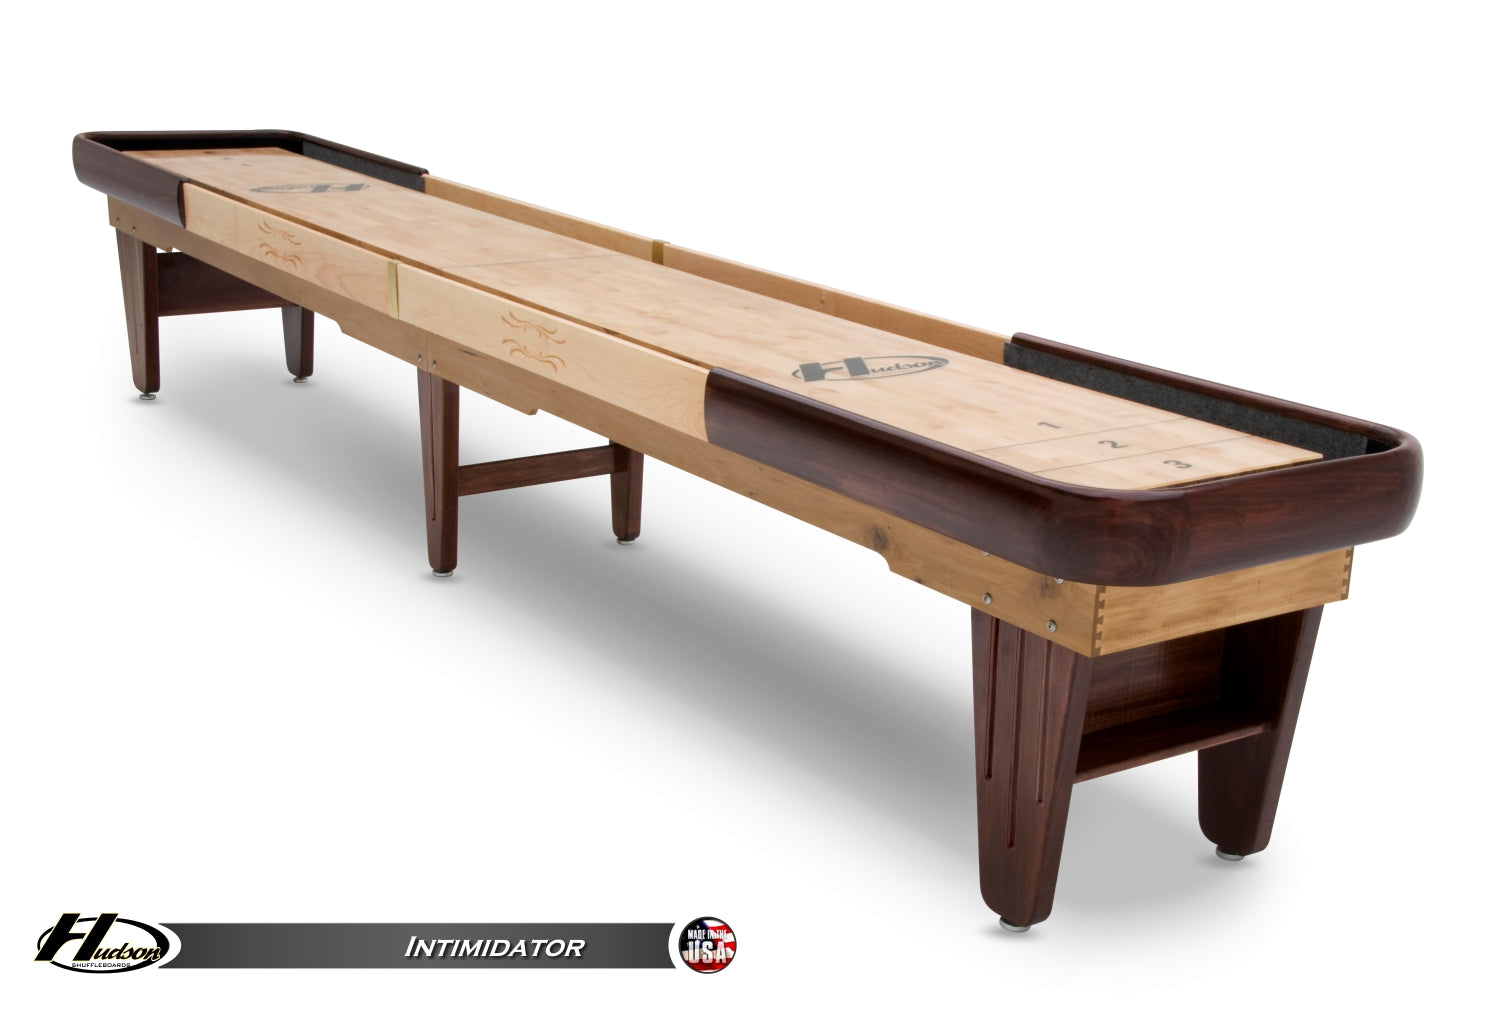 Intimidator Shuffleboard Table